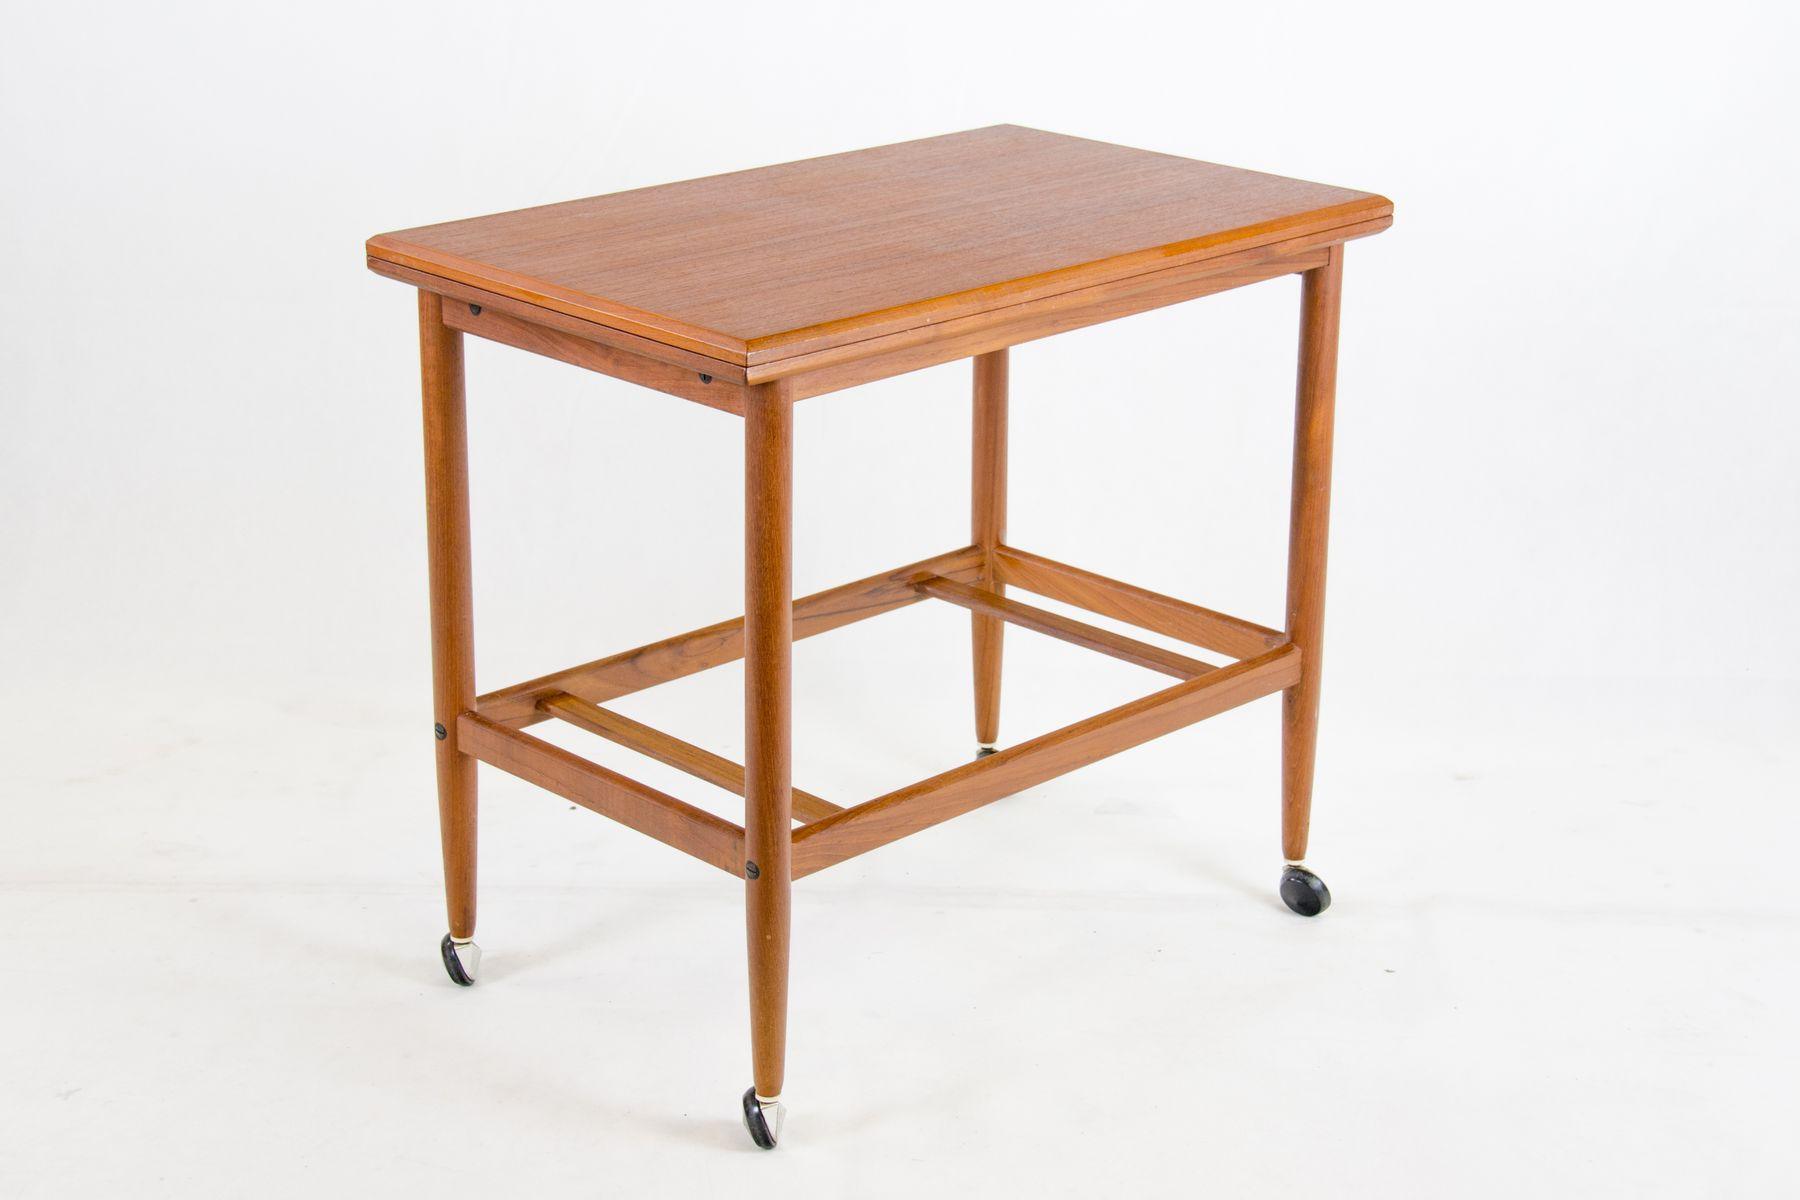 teak trolley with removable tray foldable tabletop from dyrlund accent table per piece arc floor lamp vintage scandinavian chair umbrella carpet cover strip and chairs narrow sofa